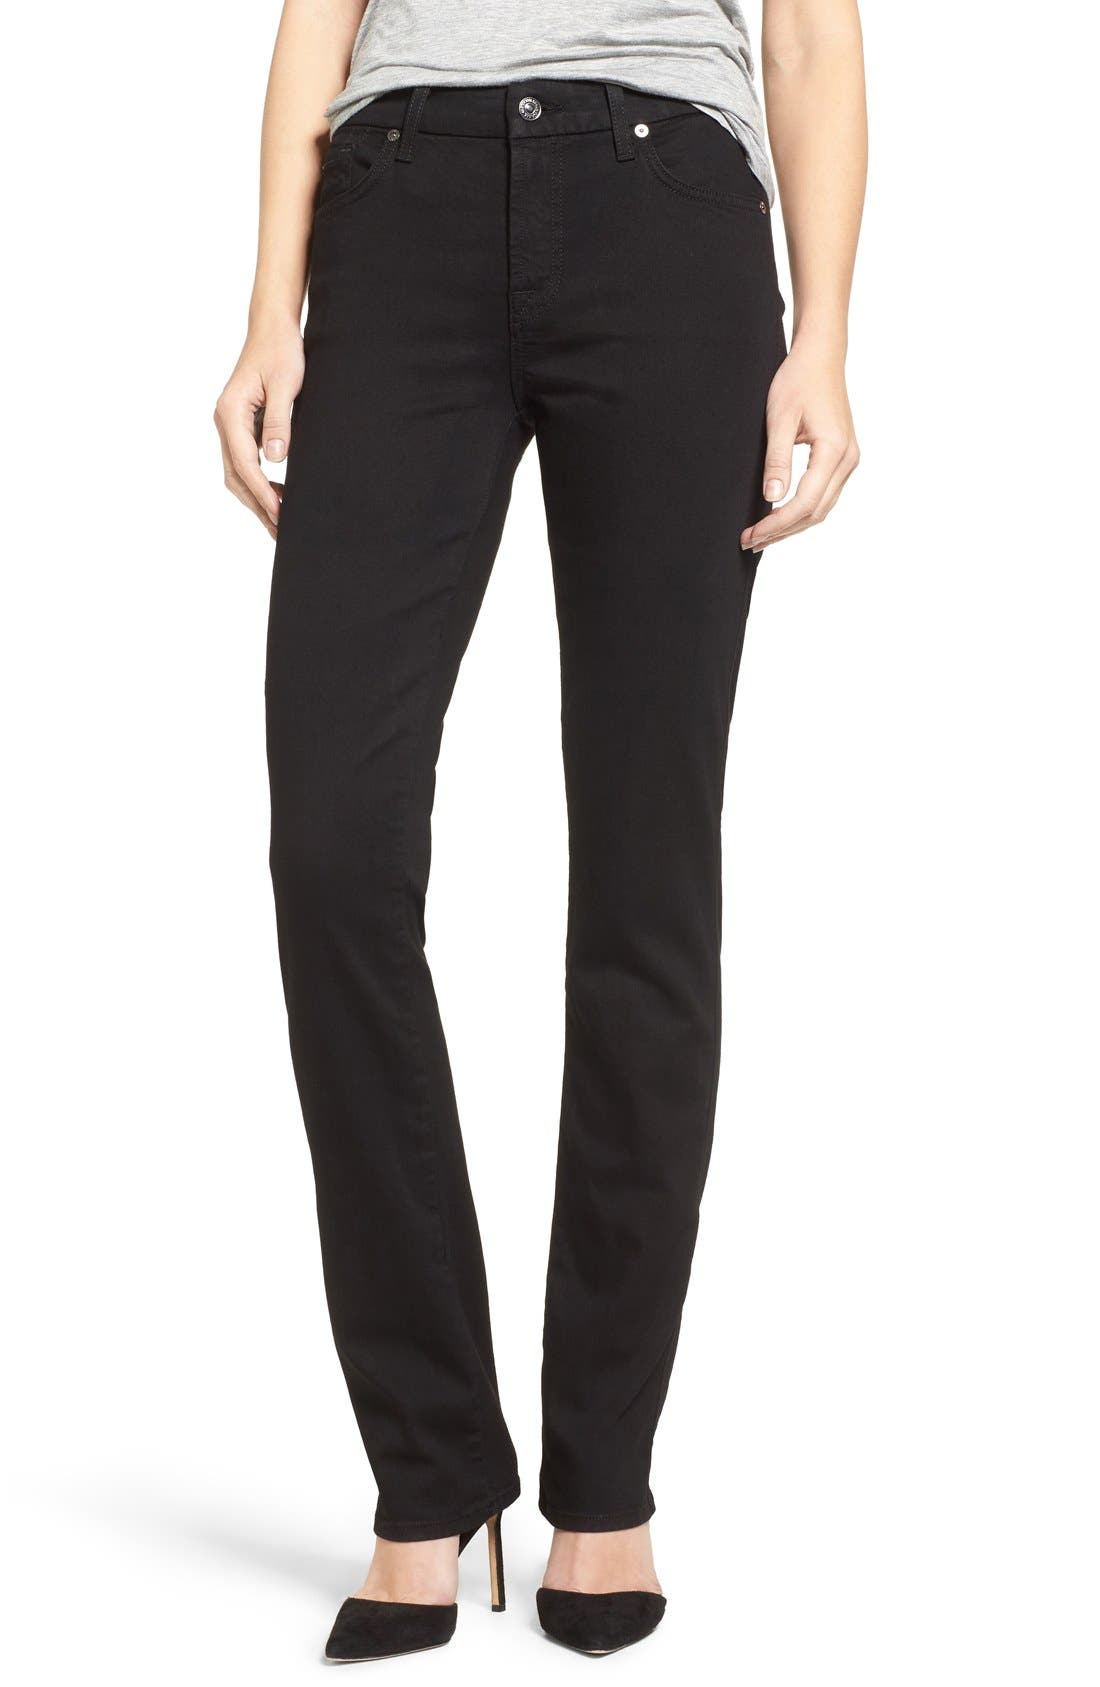 Alternate Image 1 Selected - 7 For All Mankind® 'b(air) - Kimmie' Straight Leg Jeans (Bair Black)